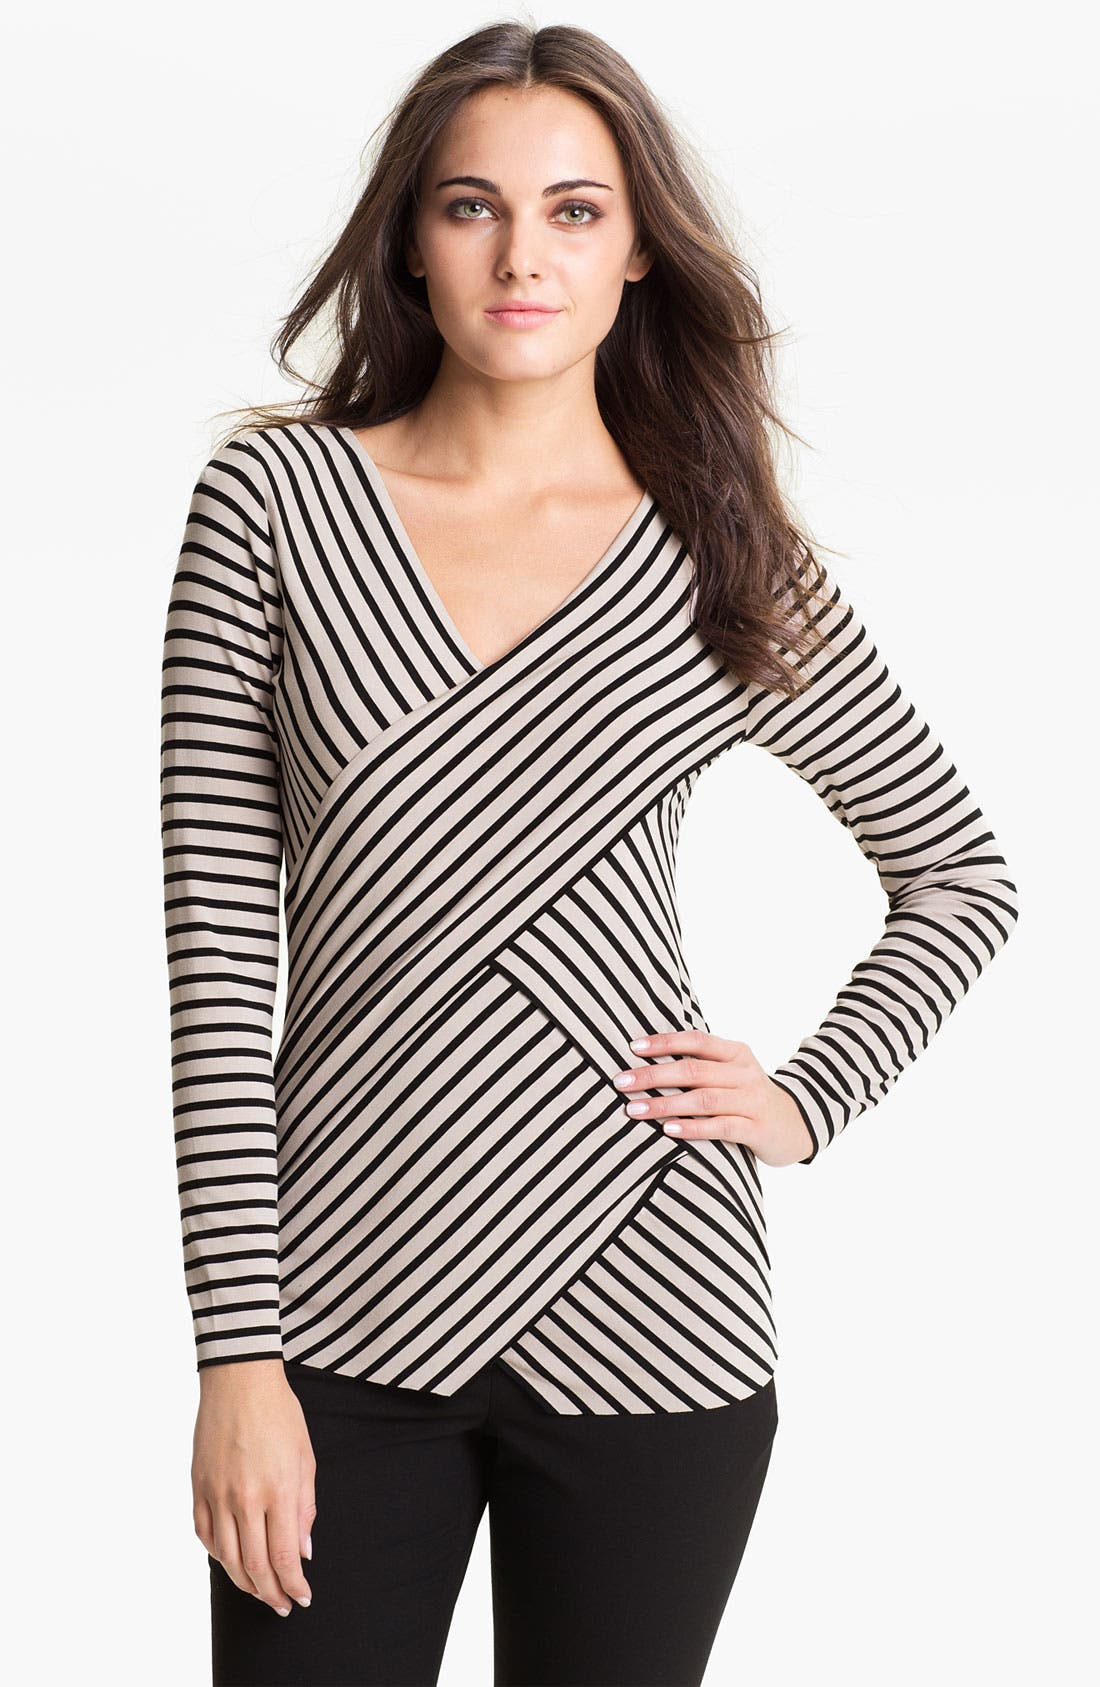 Alternate Image 1 Selected - Vince Camuto 'Zigzag' Top (Petite)